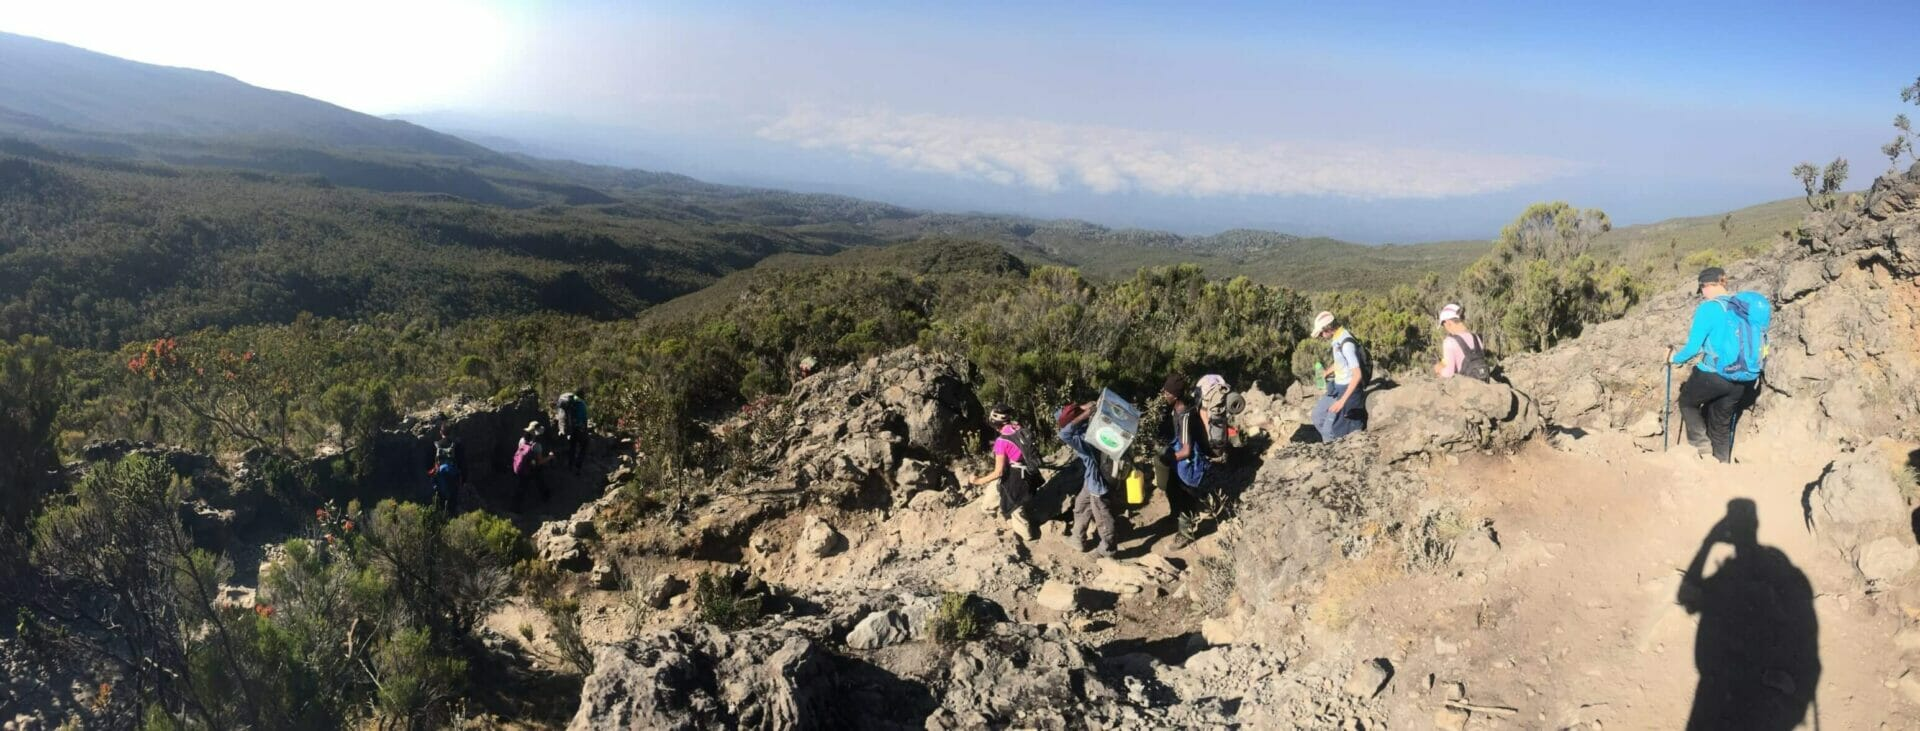 Kilimanjaro Descent Panorama